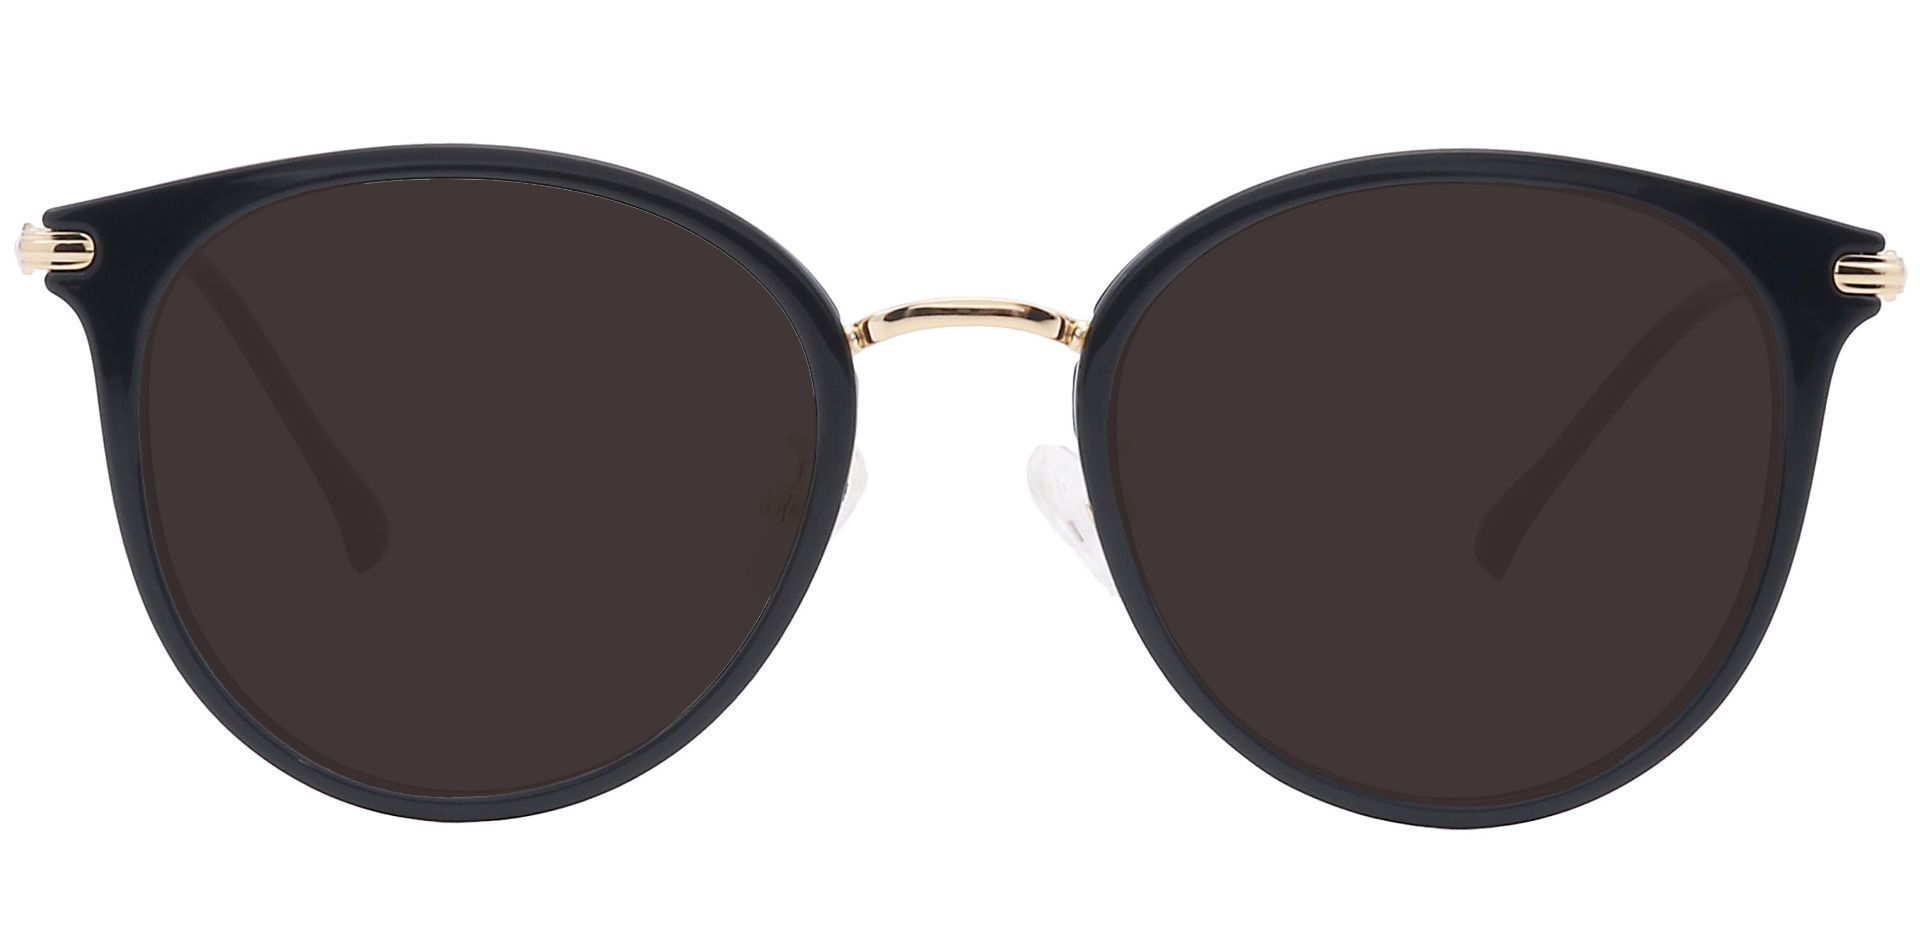 Midas Round Prescription Sunglasses - Black Frame With Gray Lenses